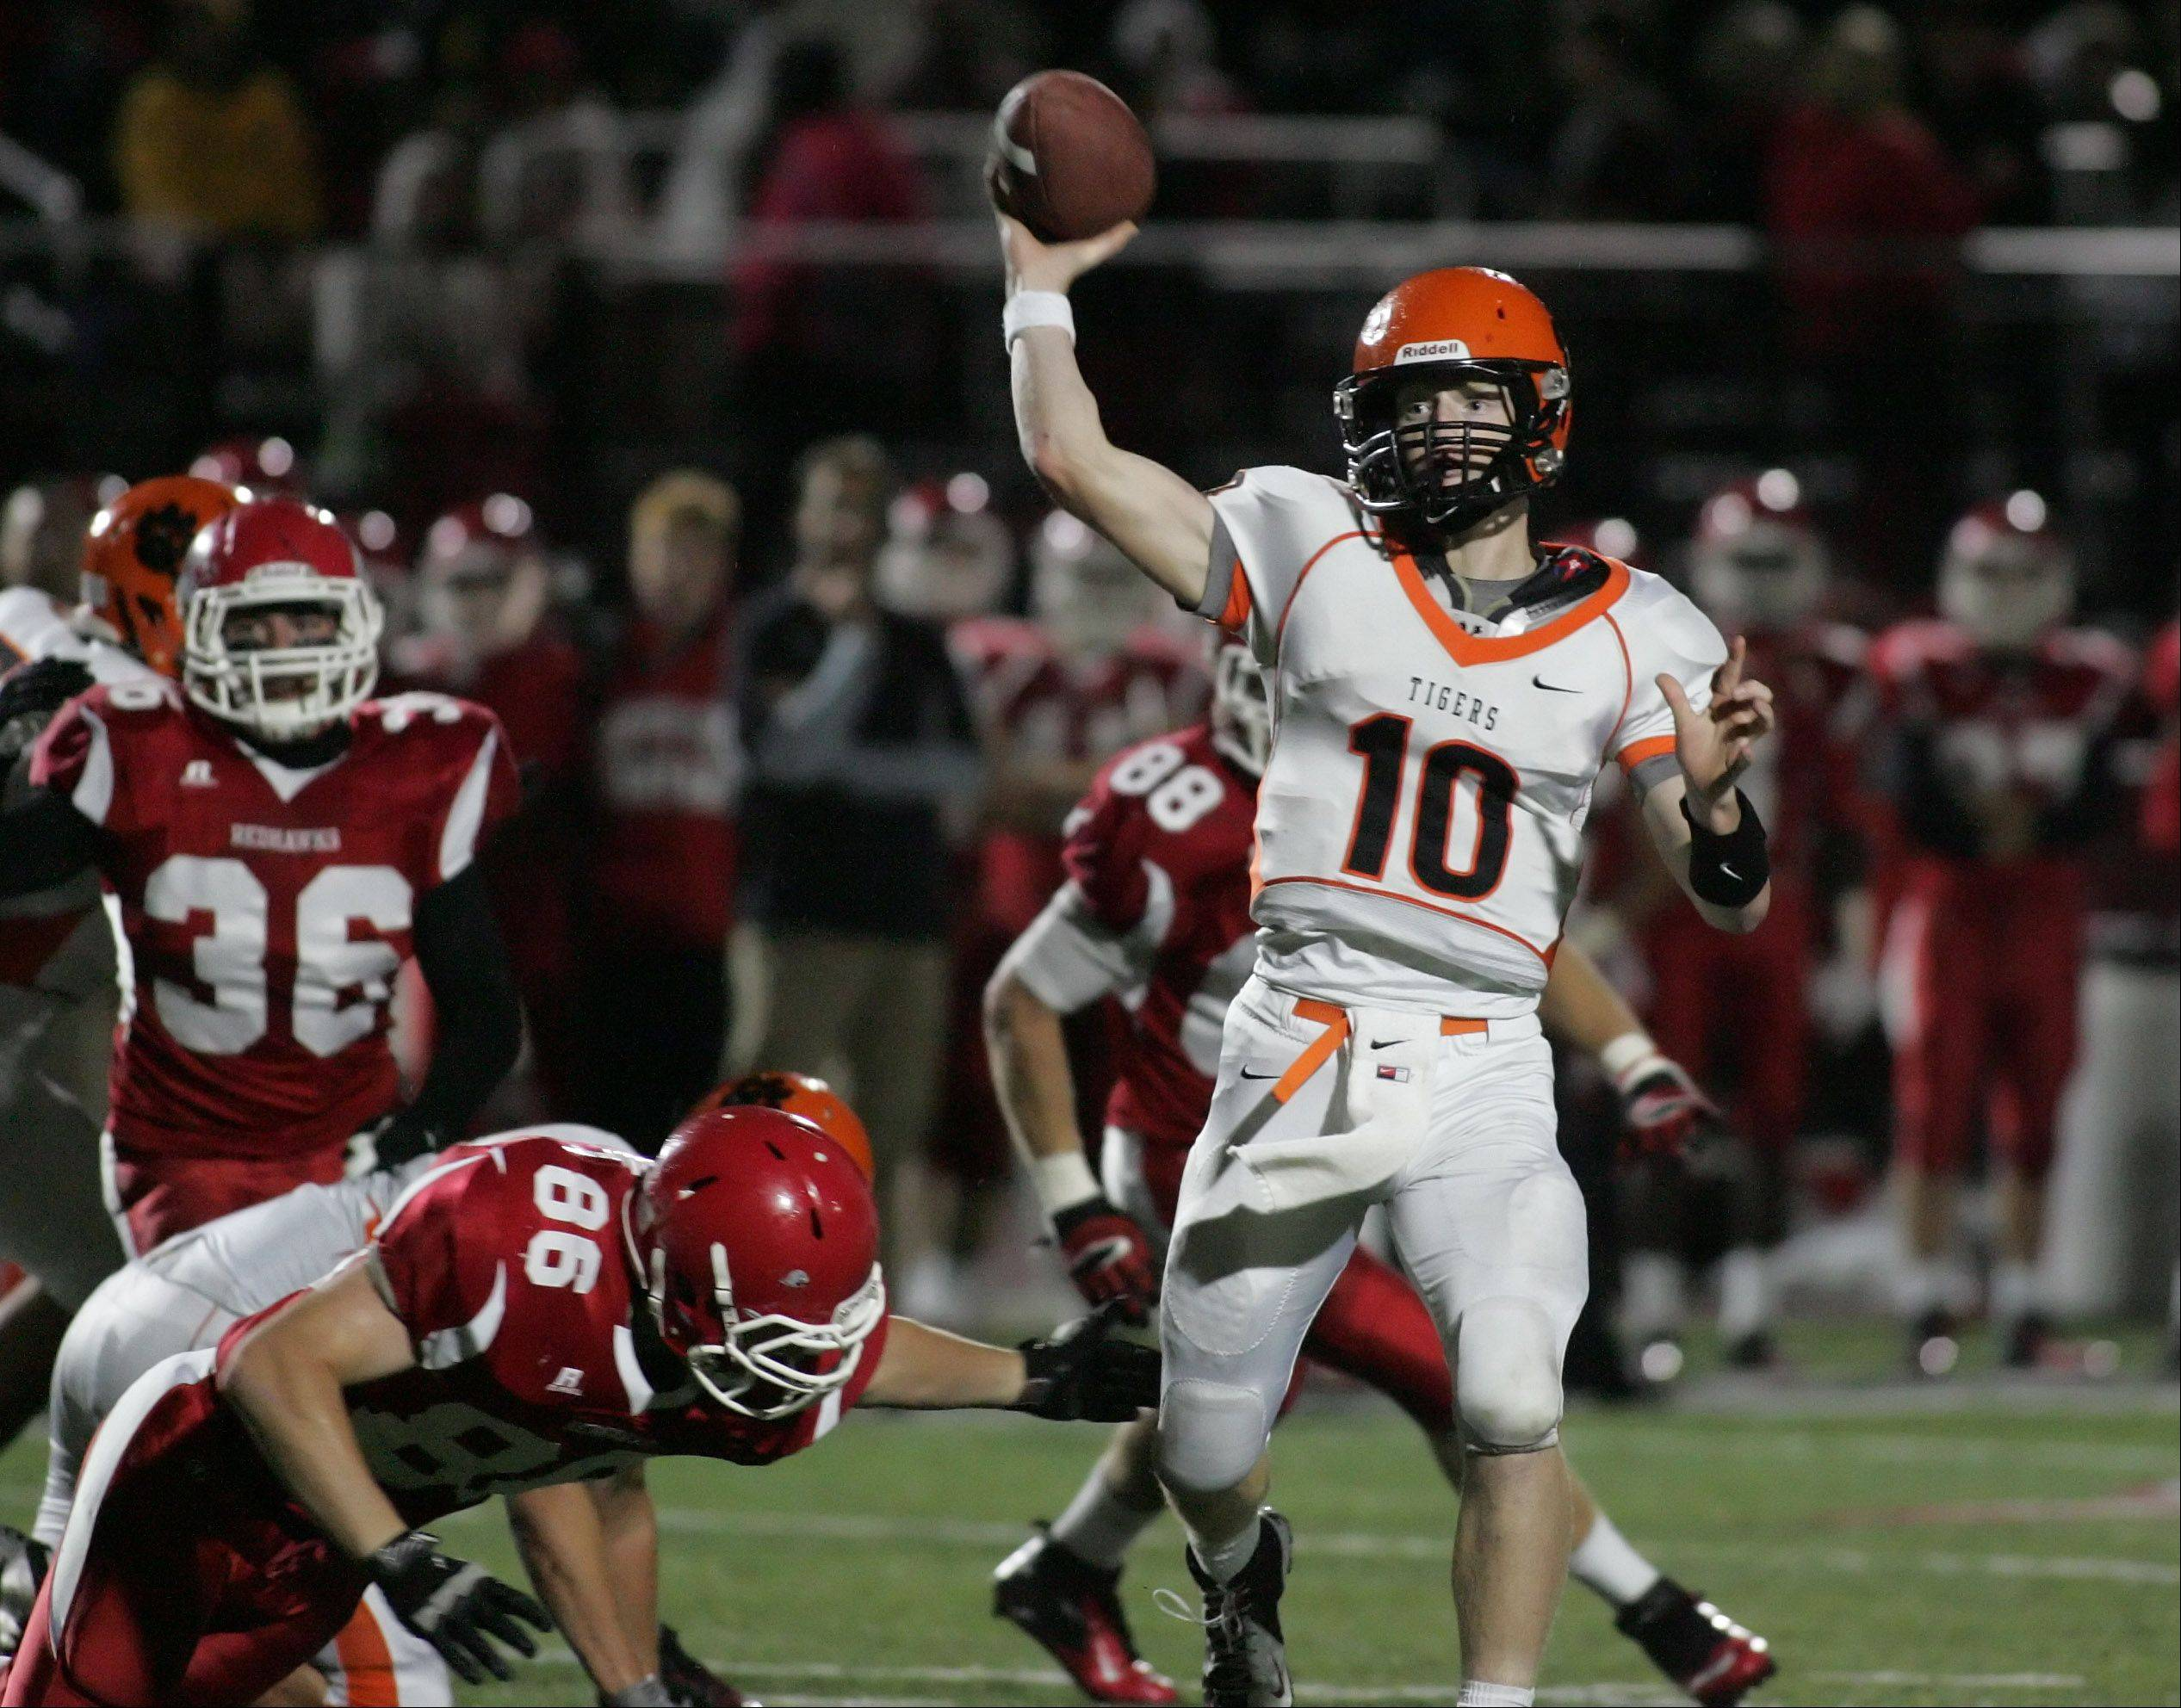 Wheaton Warrenville South quarterback Ryan Graham makes a pass .